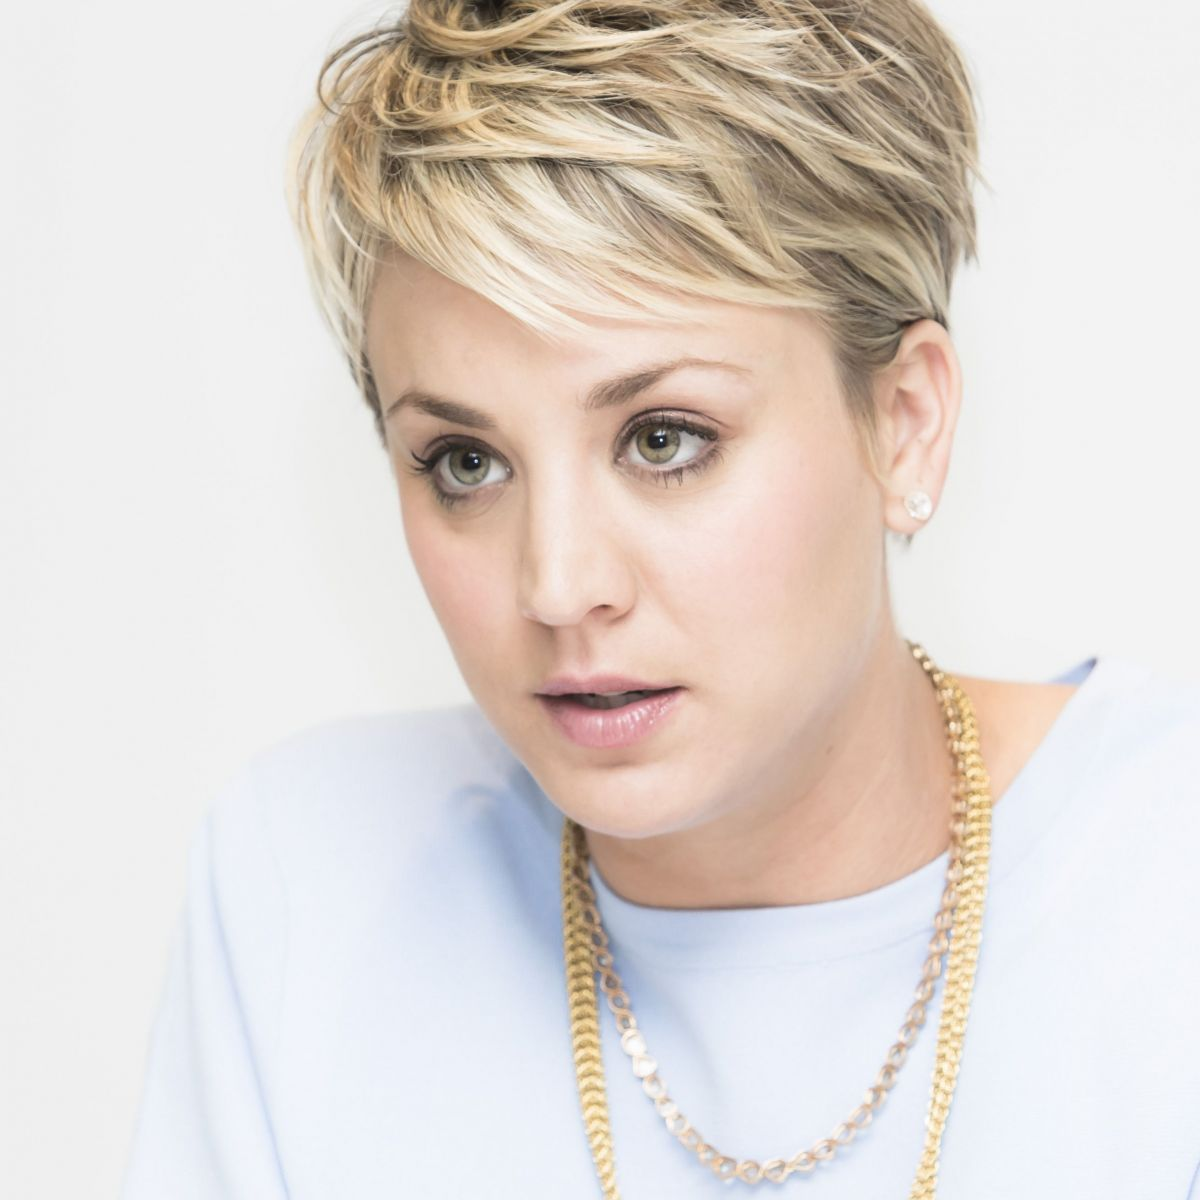 hair style for images kaley cuoco hair kaley cuoco blond hair 8518